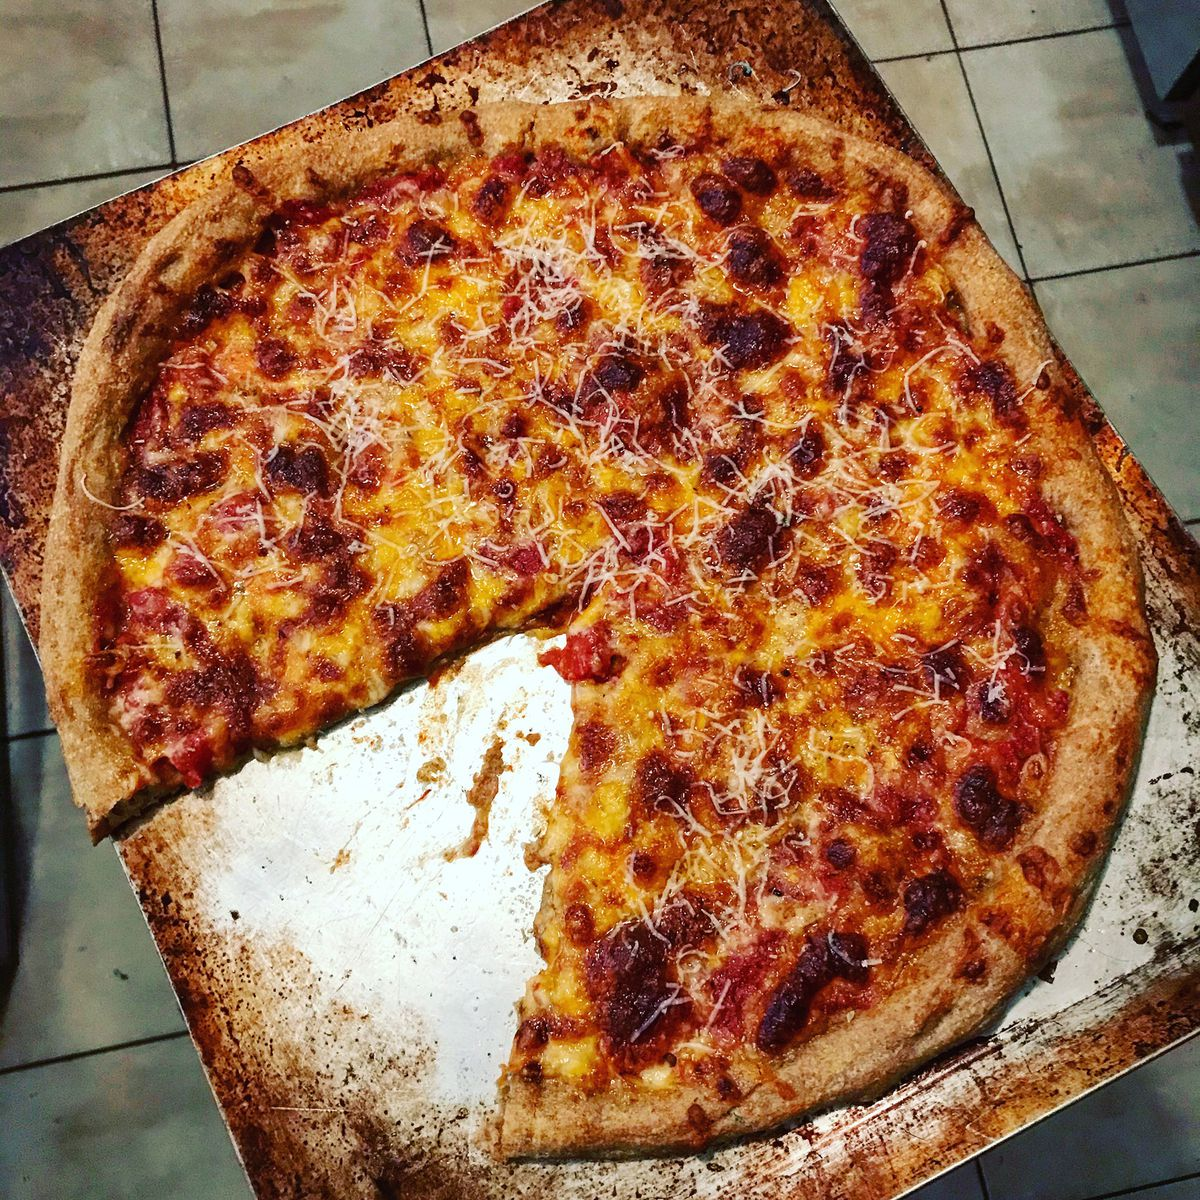 A round cheese pizza sitting atop a burn-stained pizza sheet. One triangle slice is missing